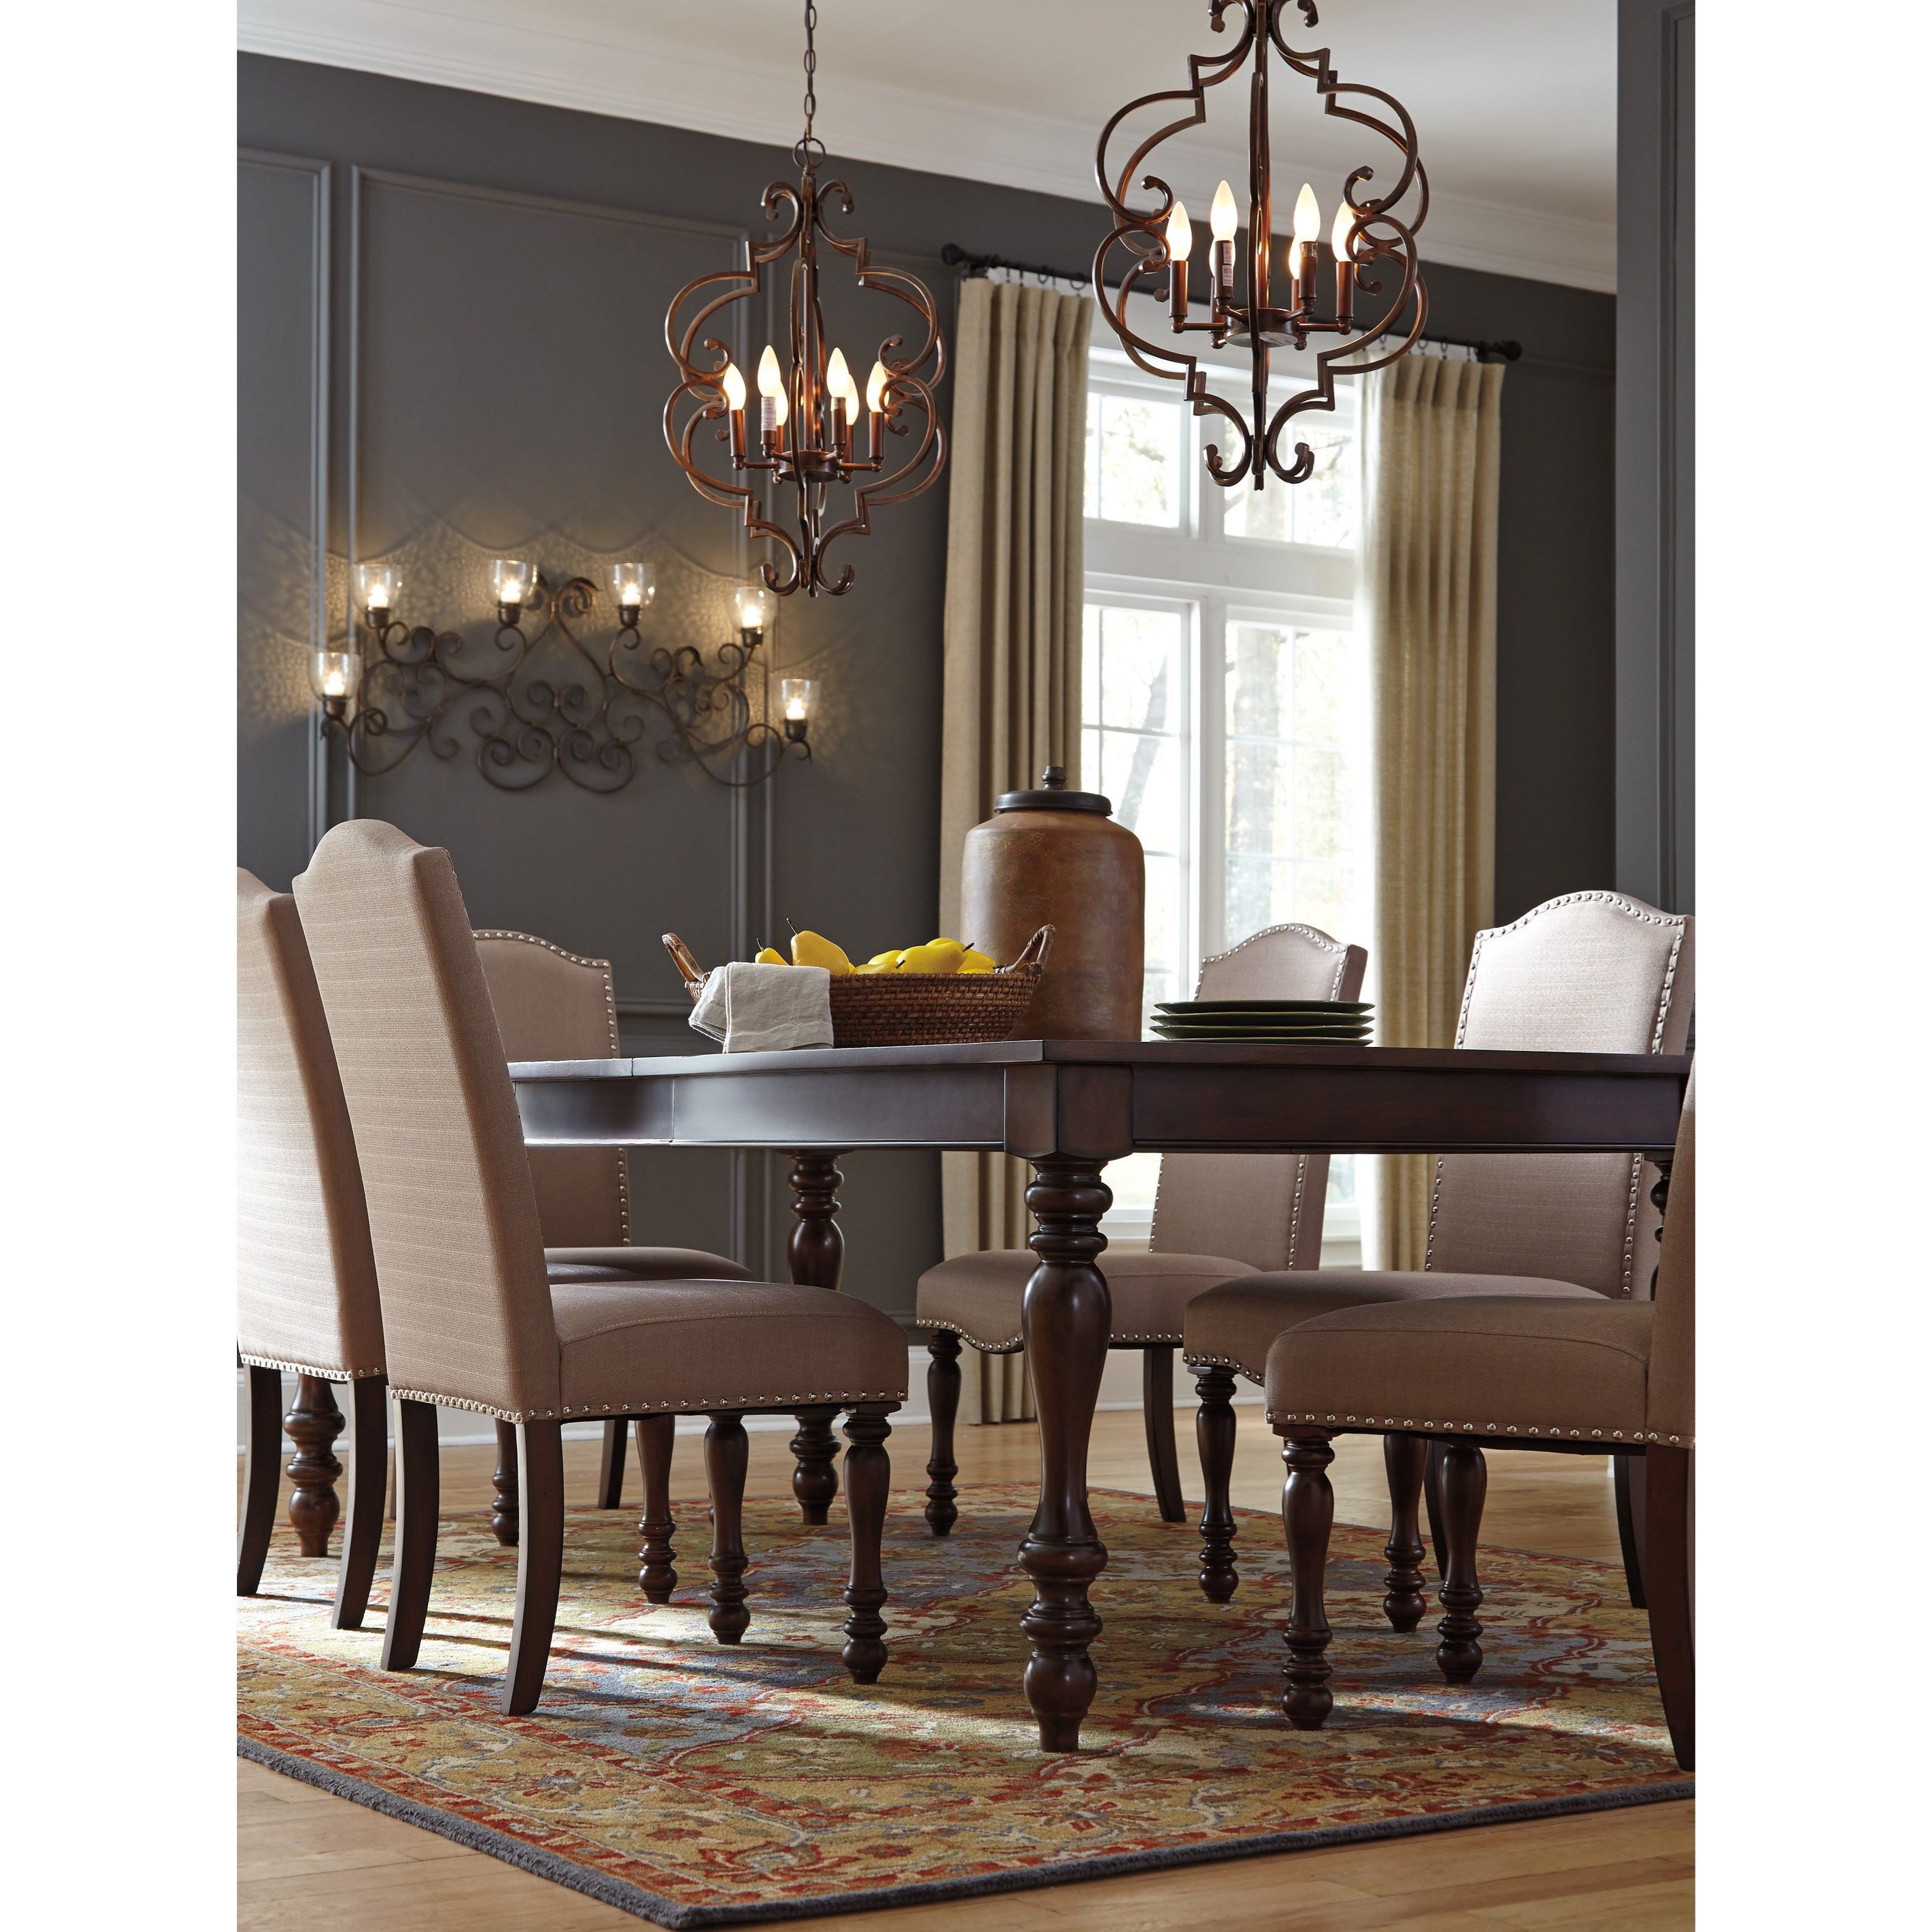 Signature Design By Ashley Baxenburg 7-Piece Dining Room